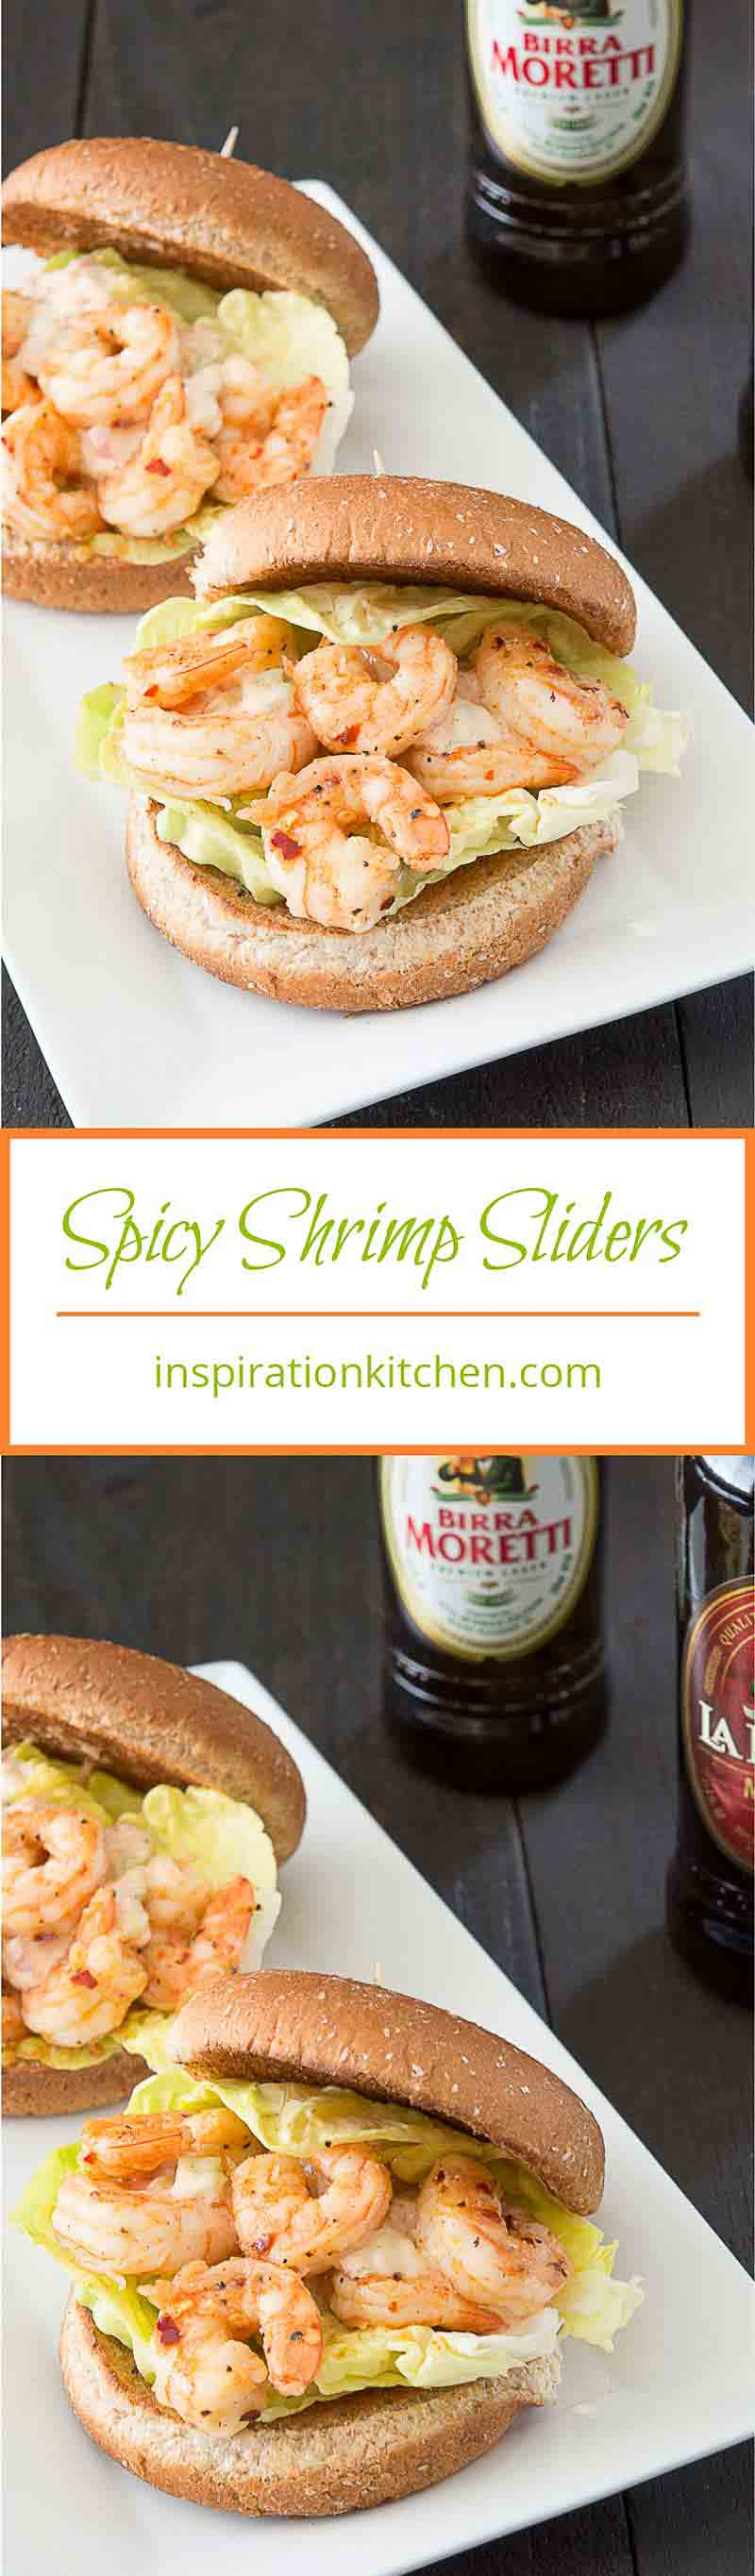 Spicy Shrimp Sliders with Celery Mayonnaise - inspirationkitchen.com